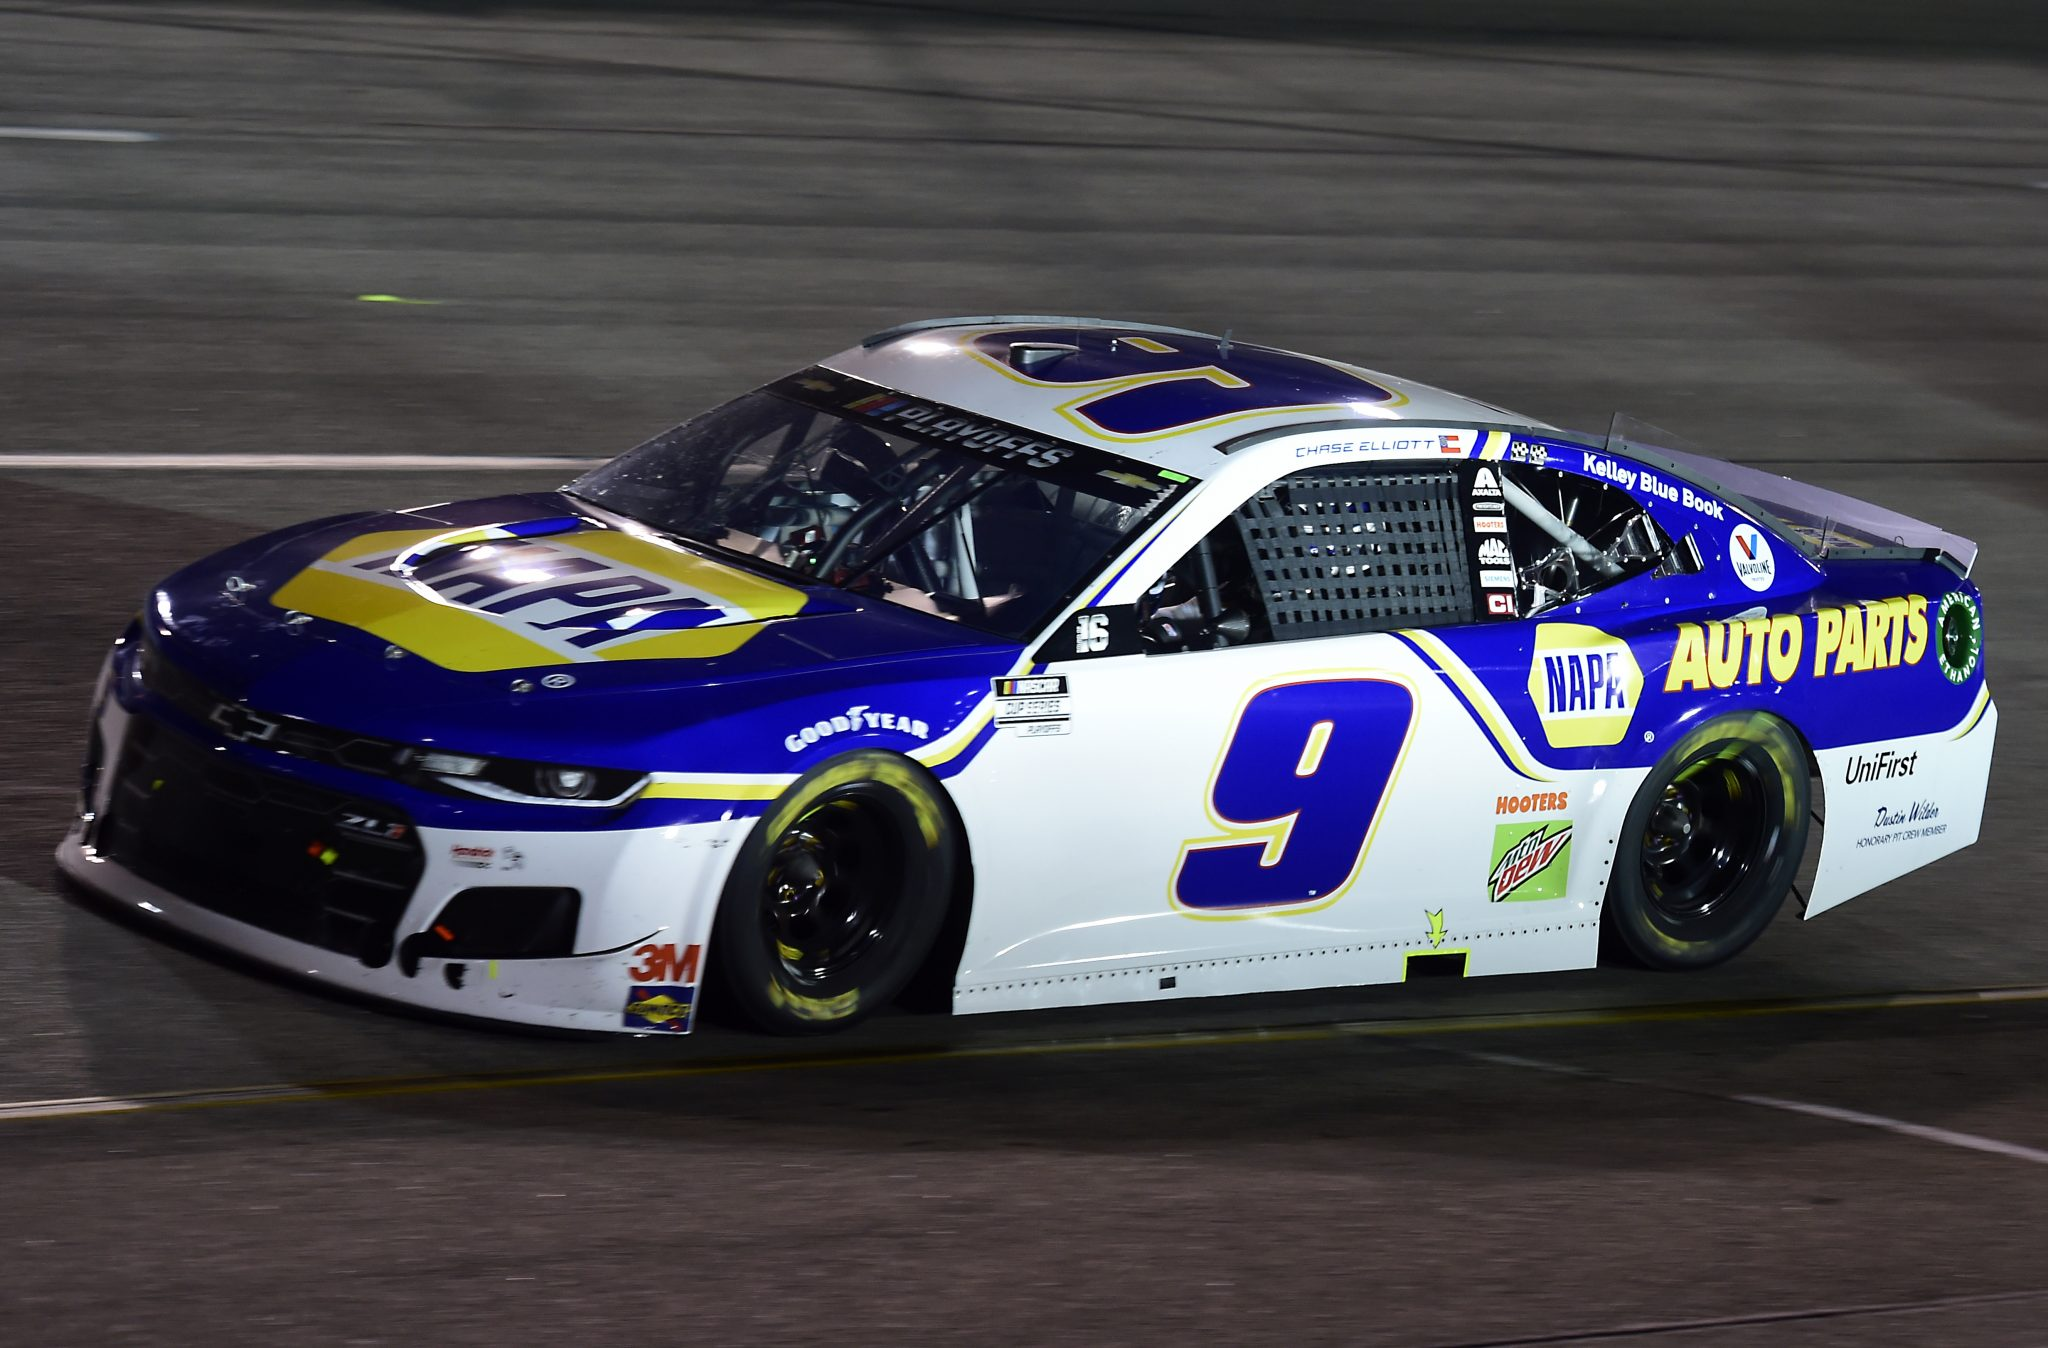 RICHMOND, VIRGINIA - SEPTEMBER 12: Chase Elliott, driver of the #9 NAPA Auto Parts Chevrolet, drives during the NASCAR Cup Series Federated Auto Parts 400 at Richmond Raceway on September 12, 2020 in Richmond, Virginia. (Photo by Jared C. Tilton/Getty Images) | Getty Images